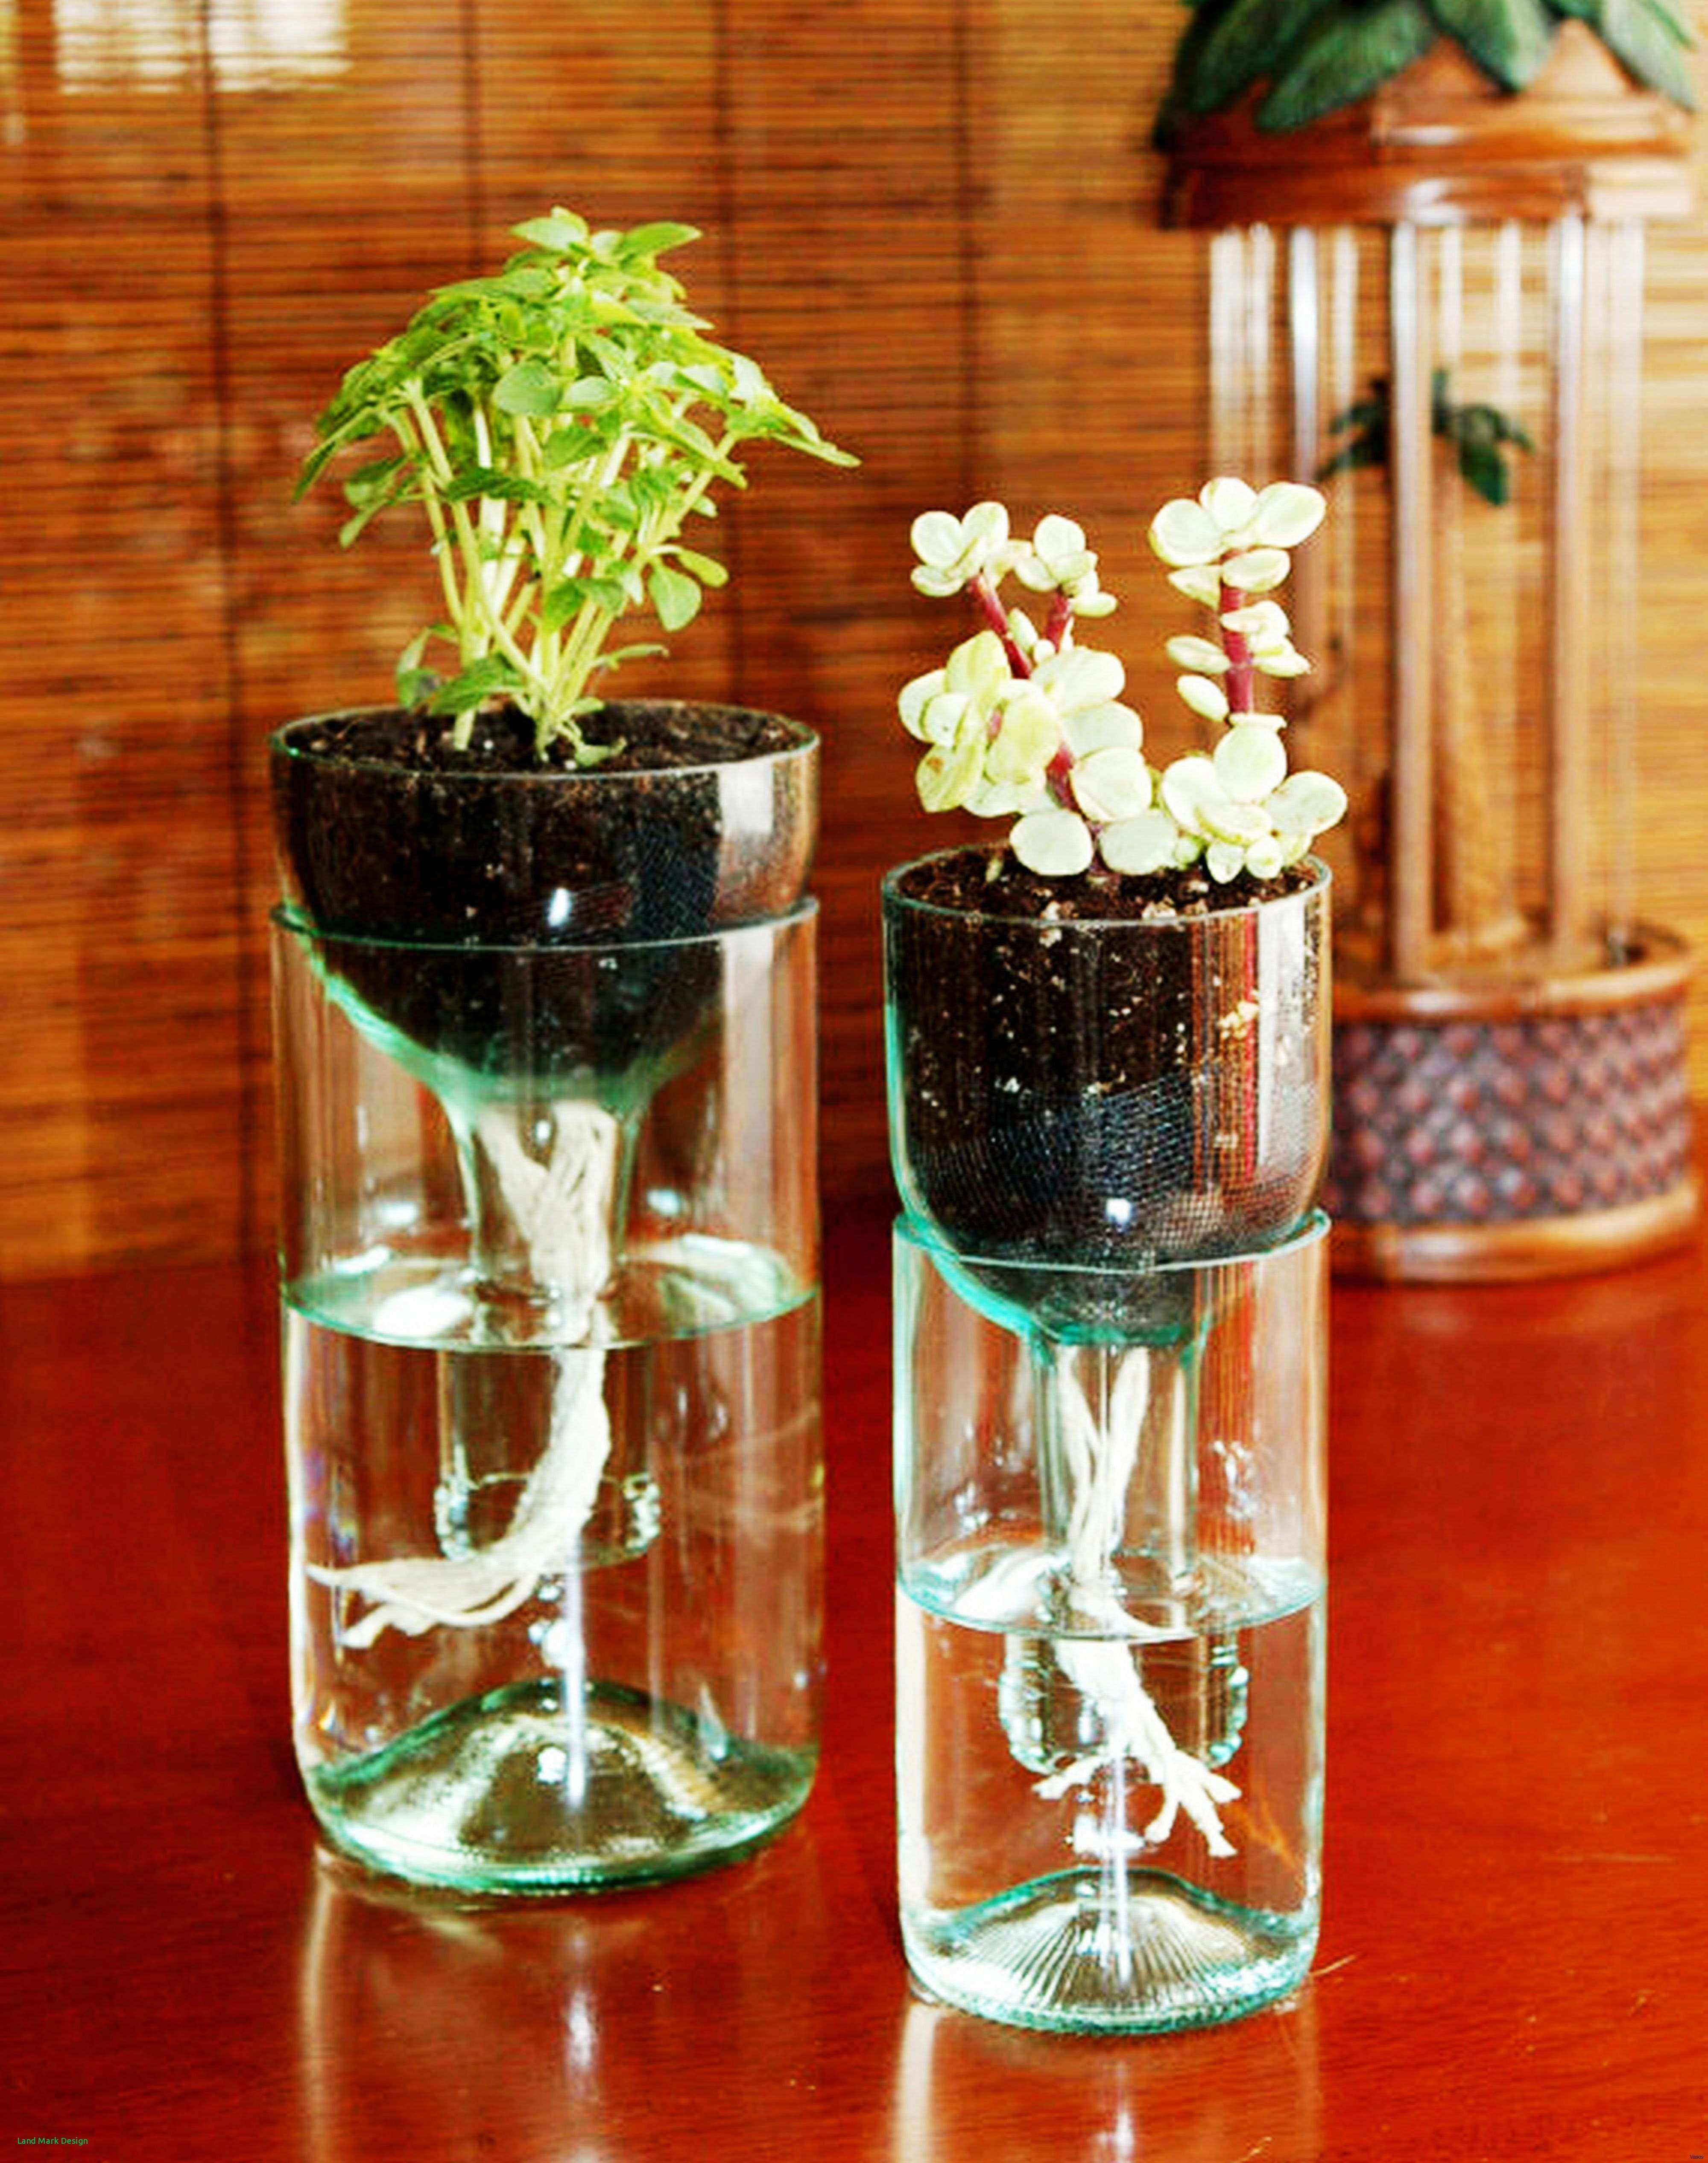 plastic vase liners of awesome planter ideas garden ideas intended for stunning flower vase decoration home on diy interior ideas with homeh vases homei 0d